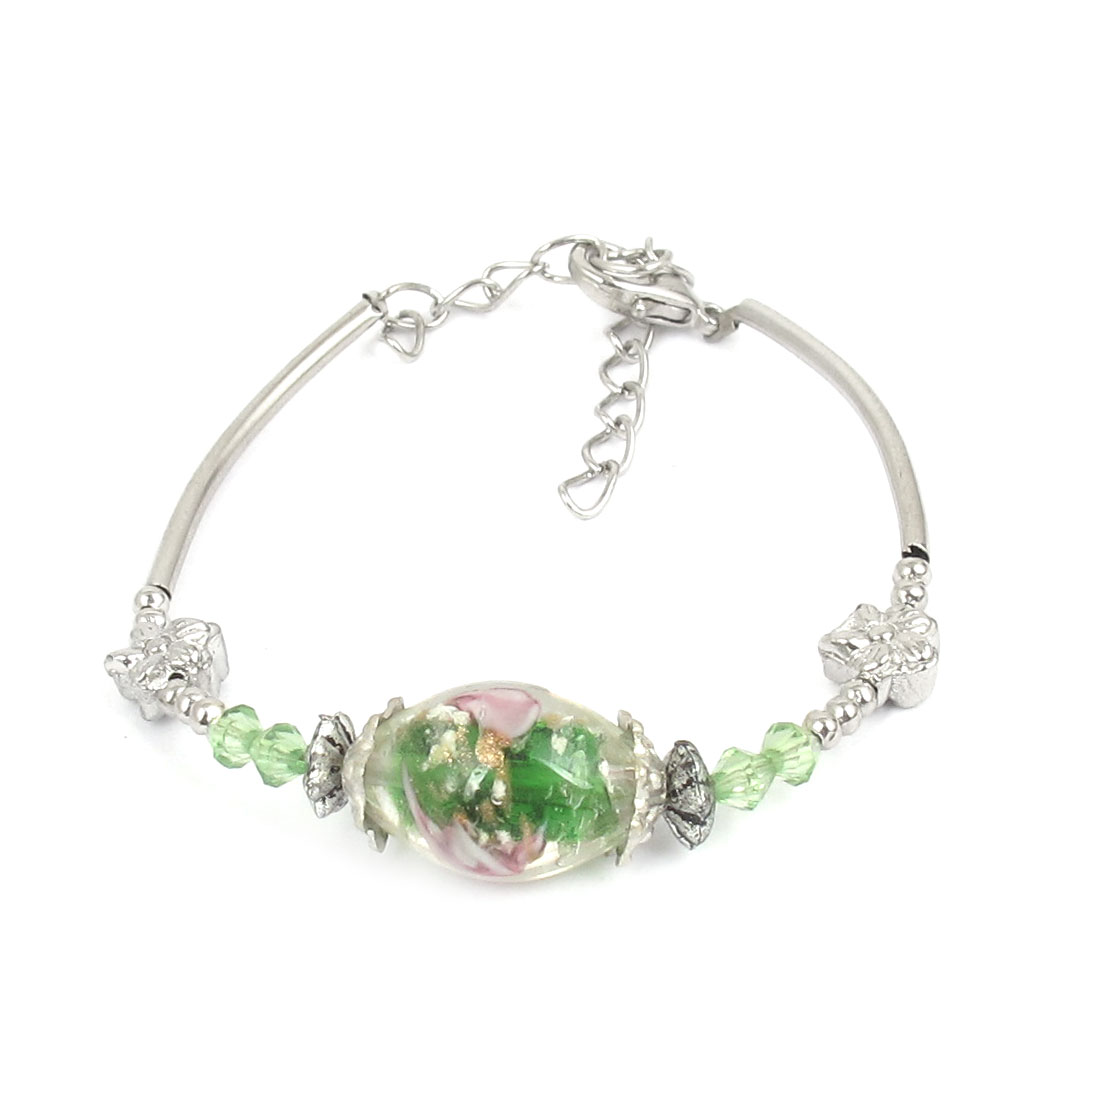 Women Lobster Clasp Link Oval Bead Detail Wrist Decoration Bracelet Bangle Green